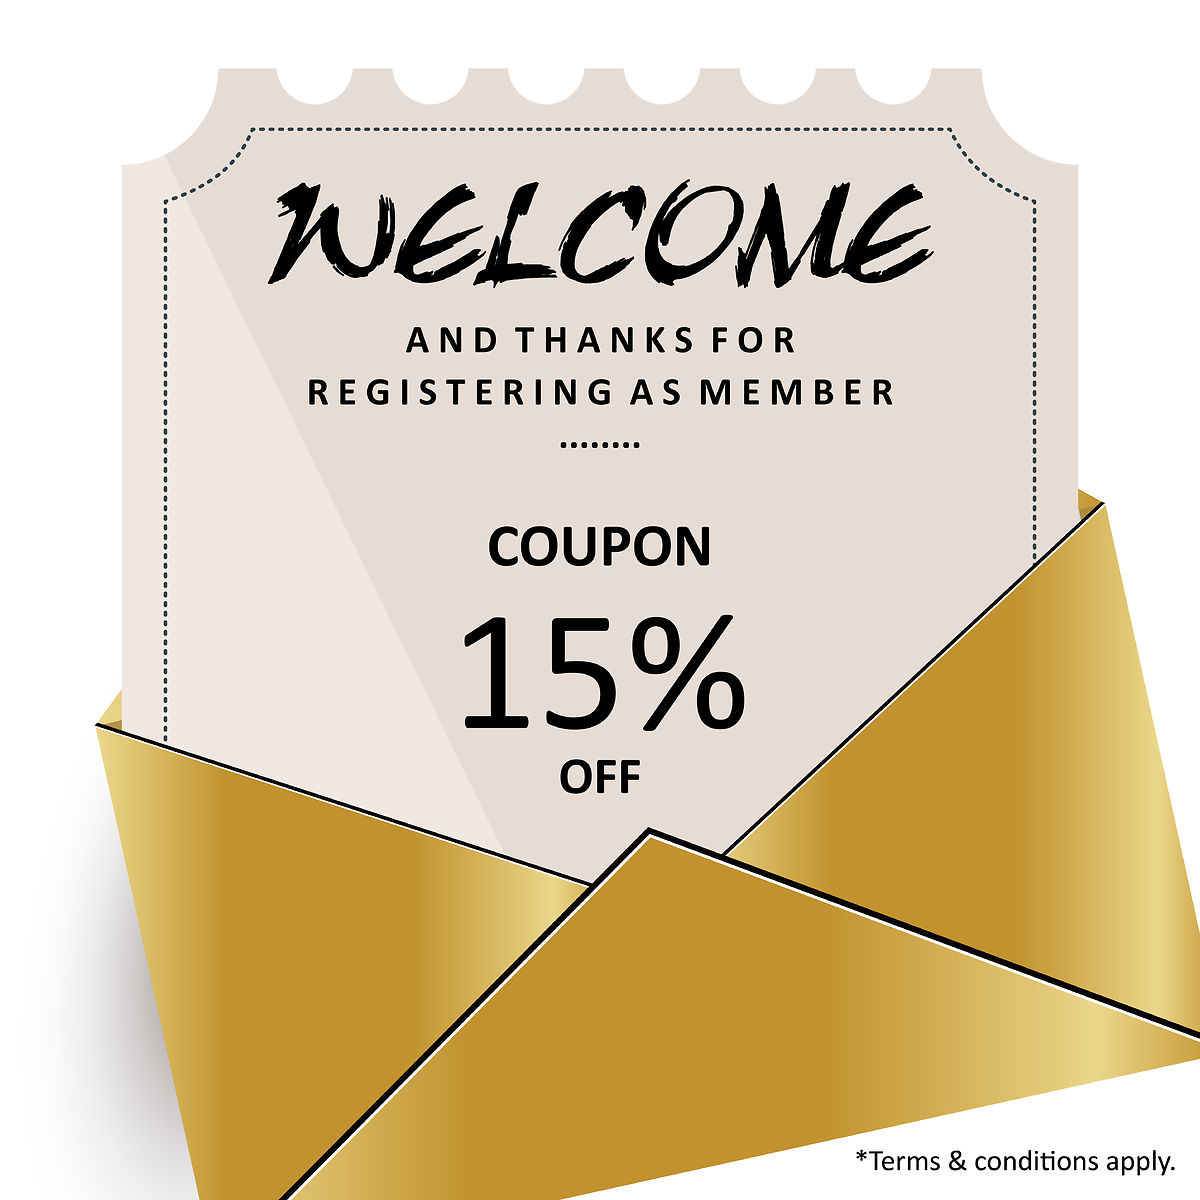 Register as our Member (15% off)